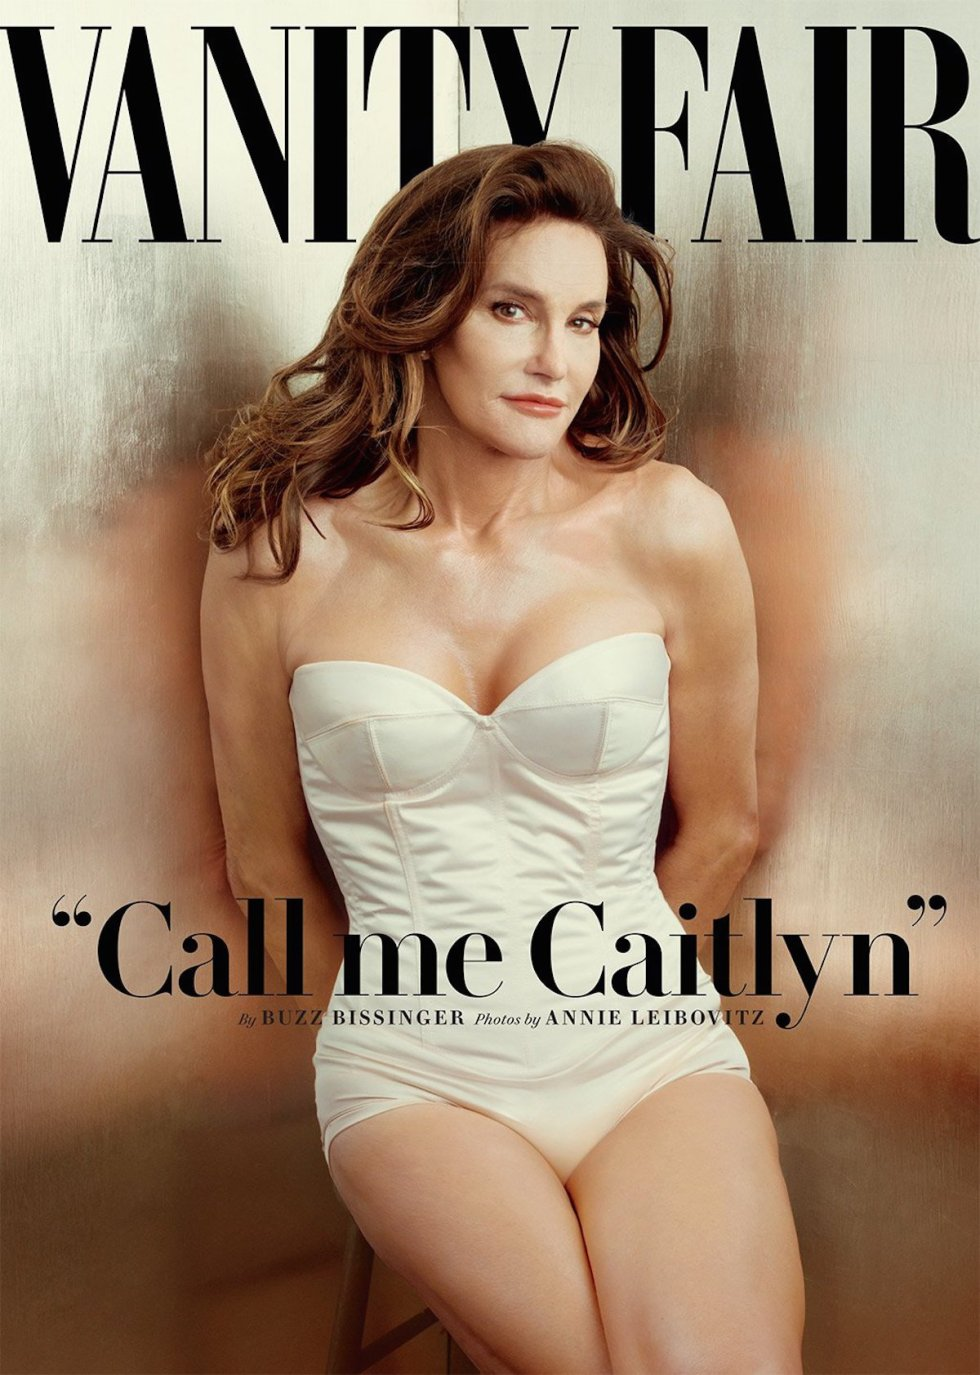 2016-iconic-image-caitlyn-jenners-iconic-vanity-fair-cover-made-history